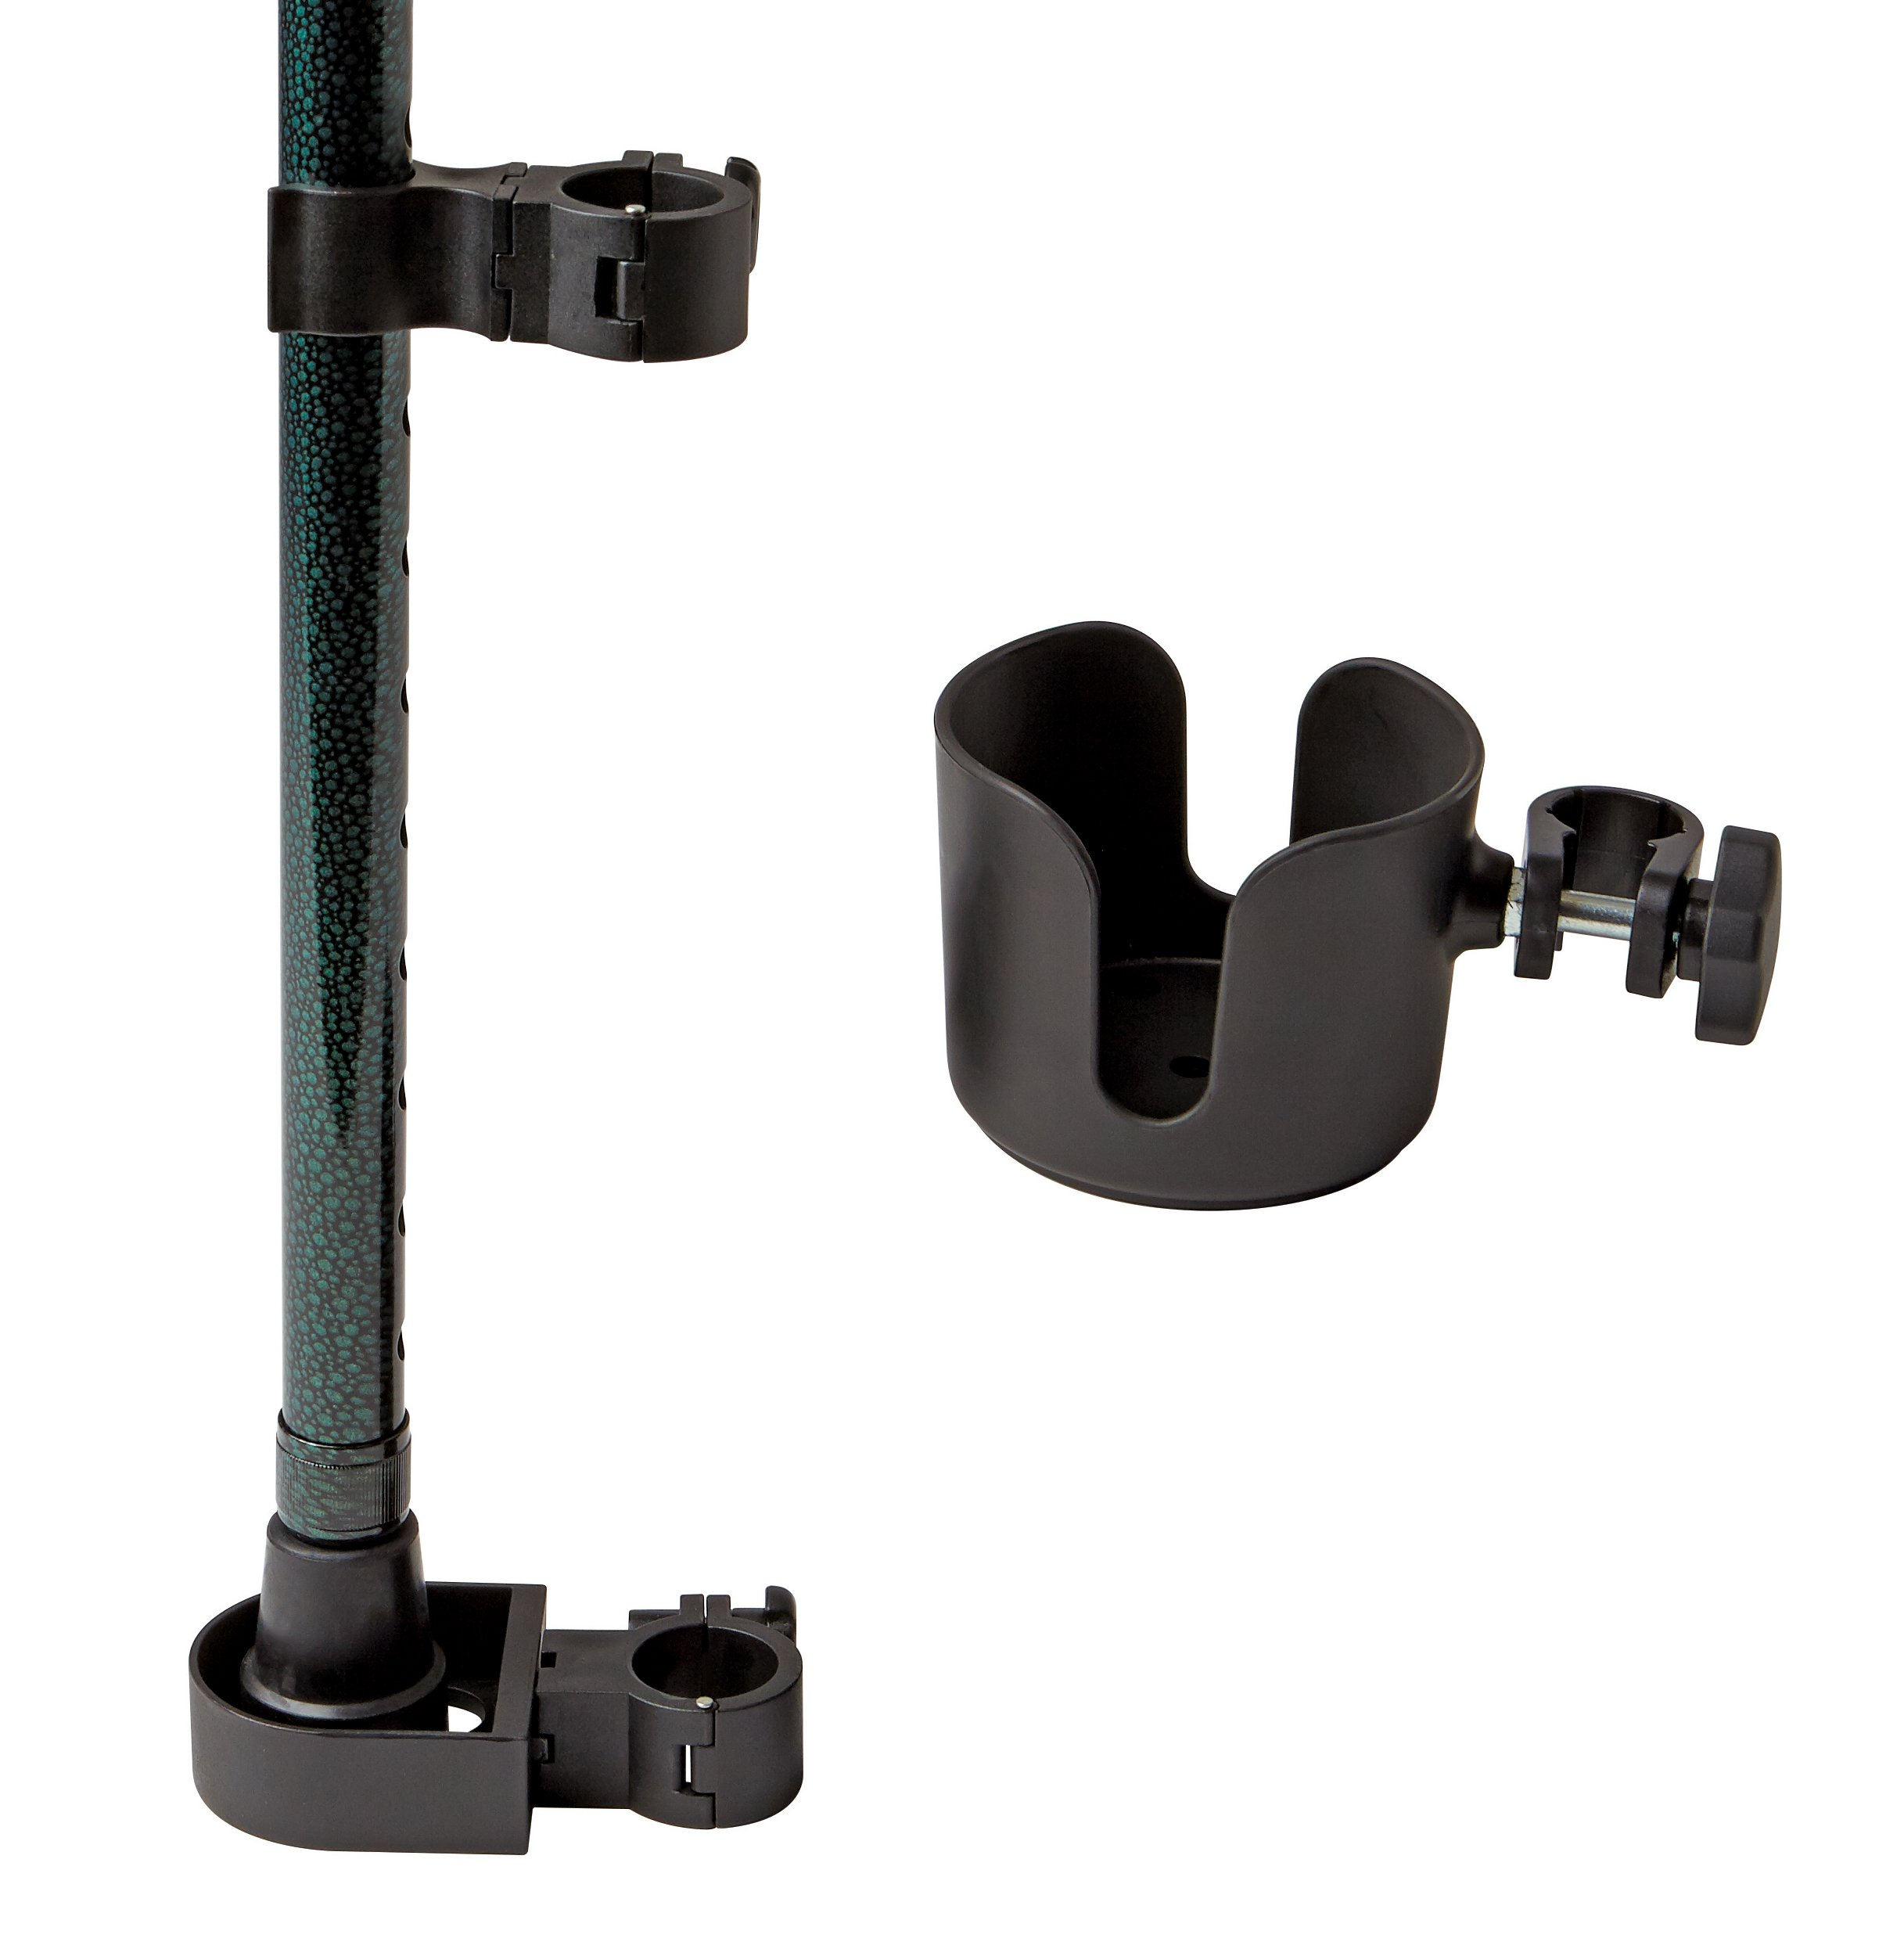 Medline Walker Cup and Cane Holder